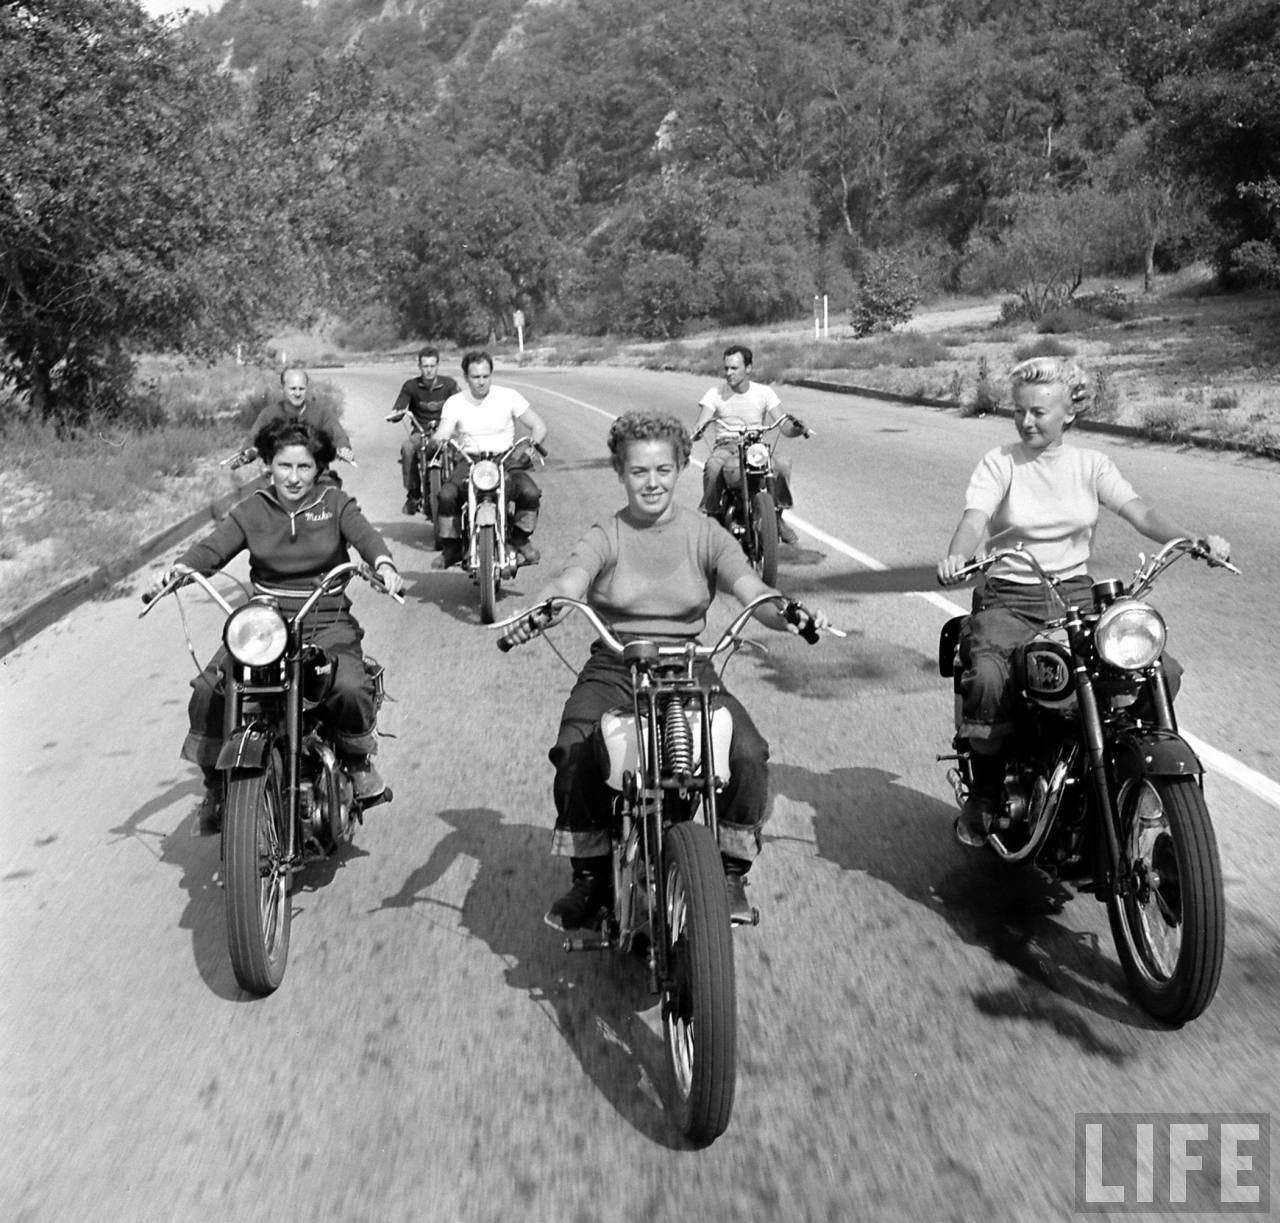 Naked lesbiens on motorcycle